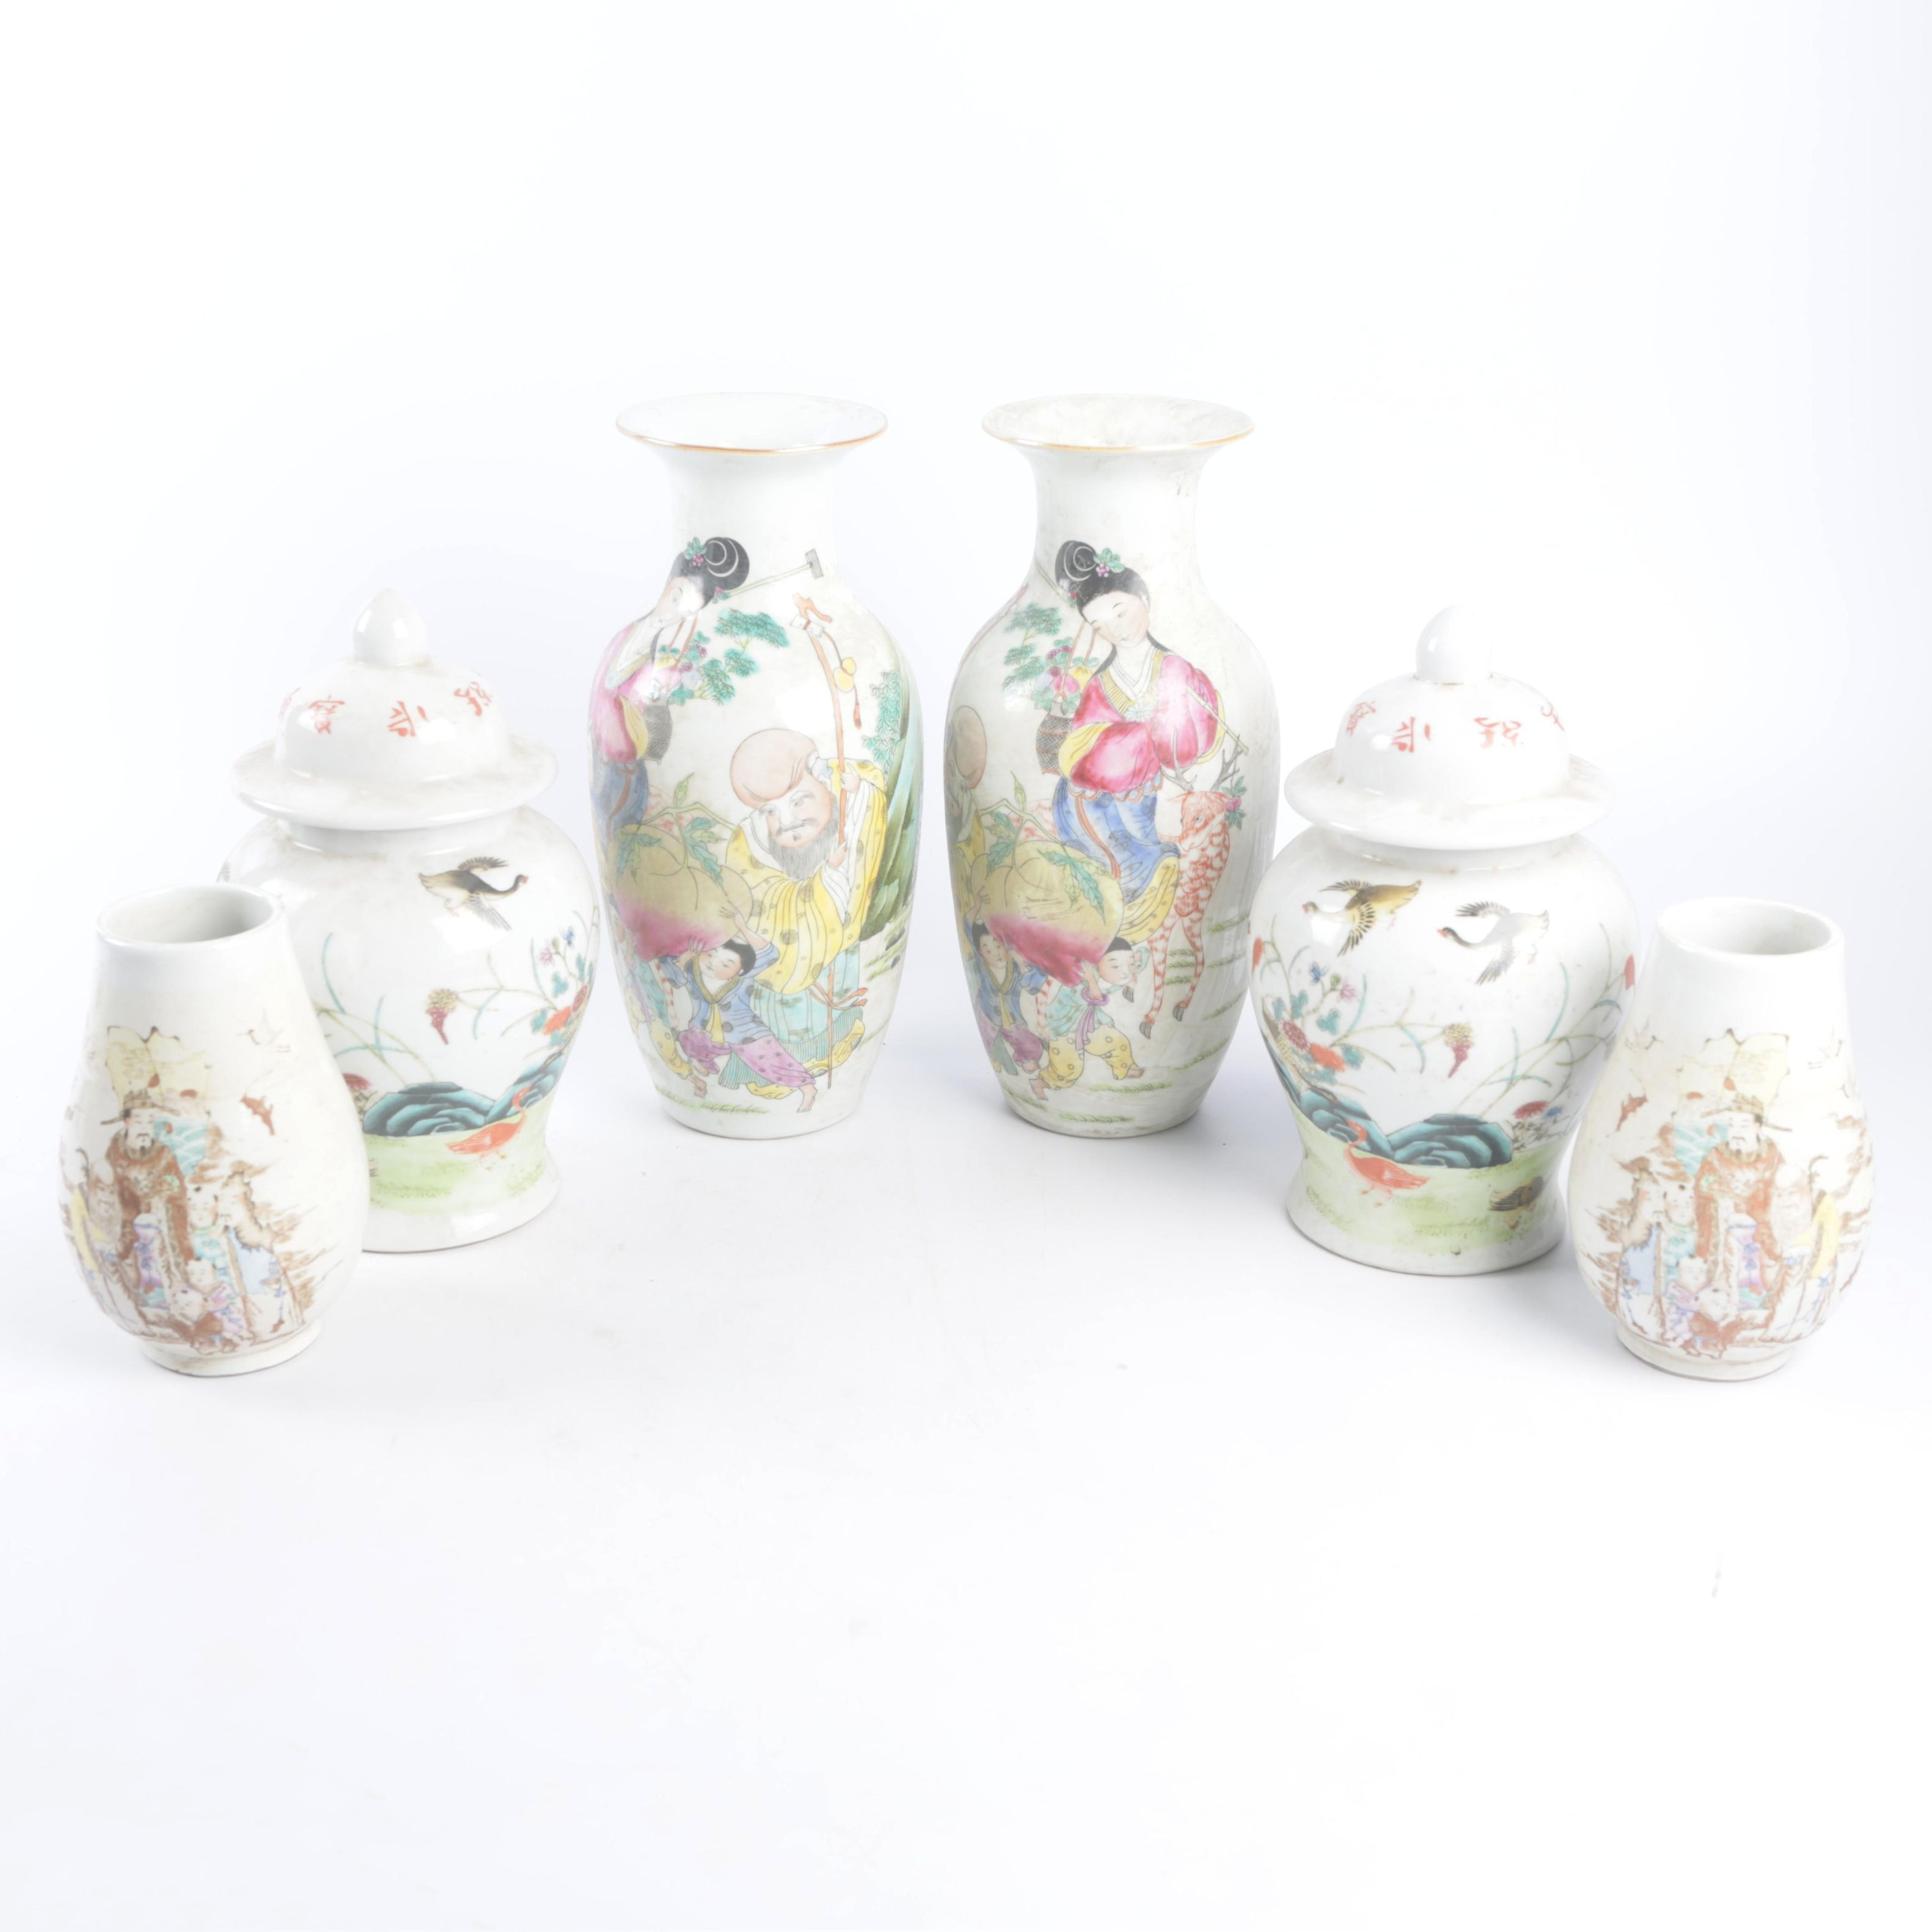 Vintage Republic Period Chinese Hand-Painted Porcelain Vases